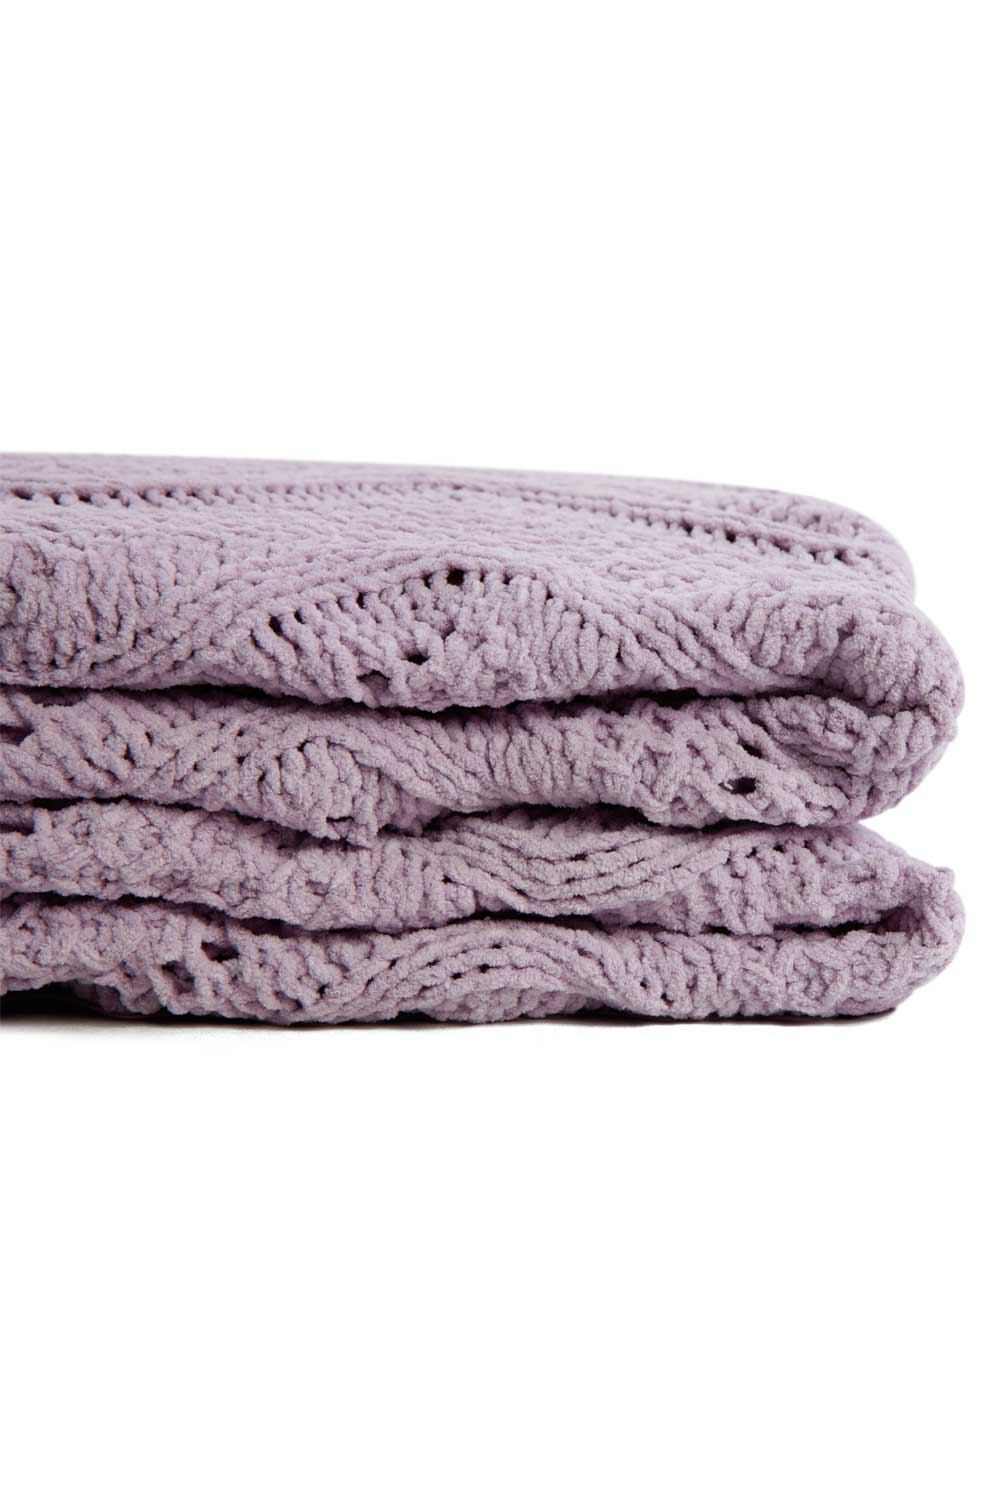 MIZALLE HOME Braided Lilac Seat Shawl (130X170) (1)